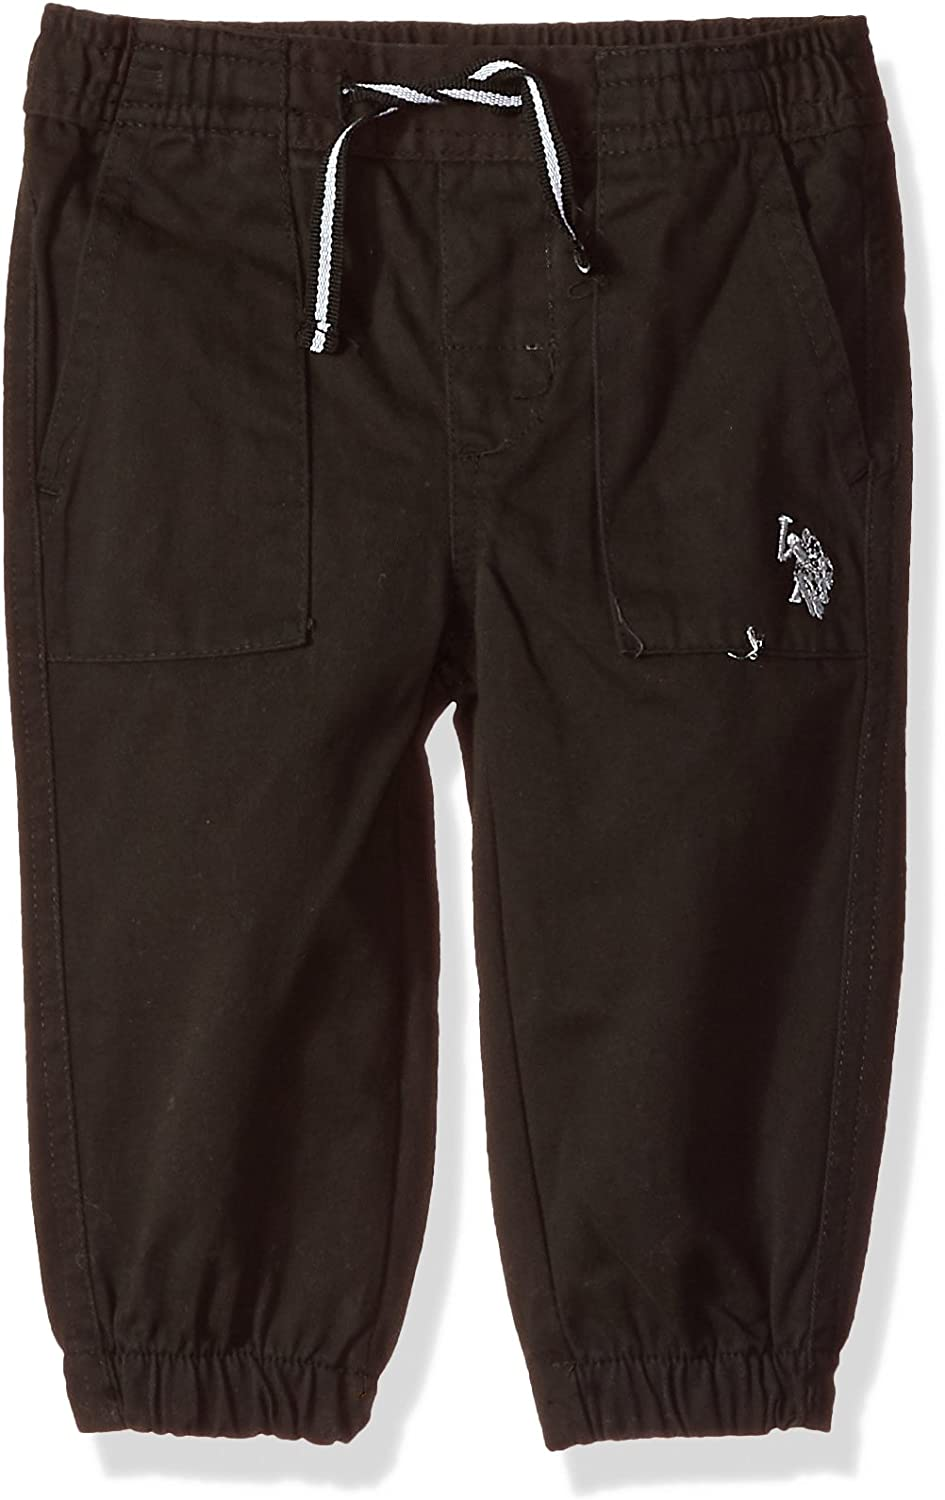 U.S. Polo Assn. Super beauty product restock Raleigh Mall quality top Baby Jogger Boy's Pants